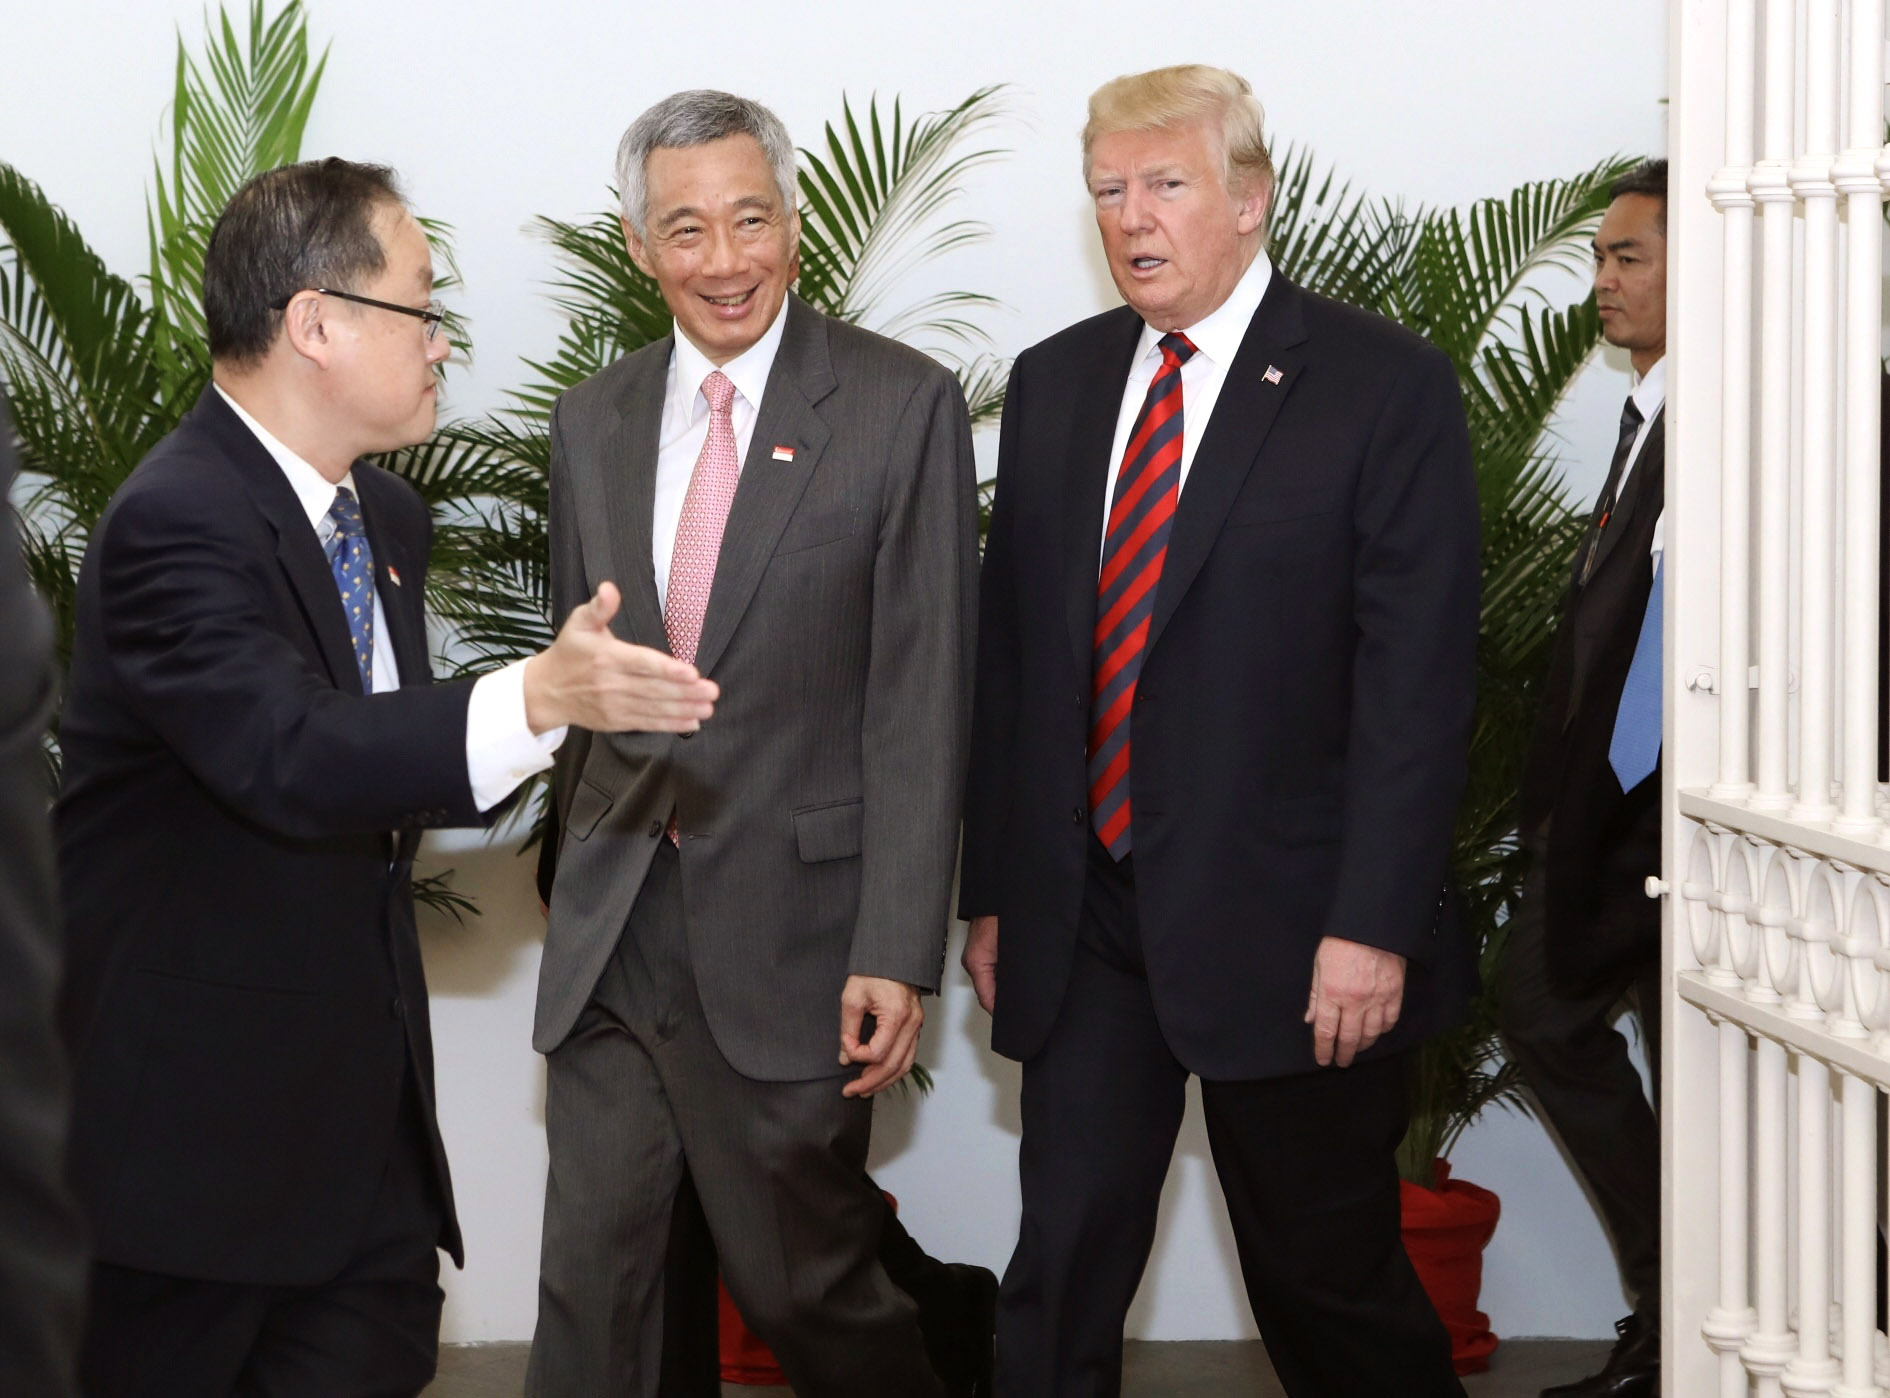 This handout provided by the Singapore's Ministry of Communications and Information (MCI) shows Trump with Singapore's Prime Minister Lee Hsien Loong on June 11.